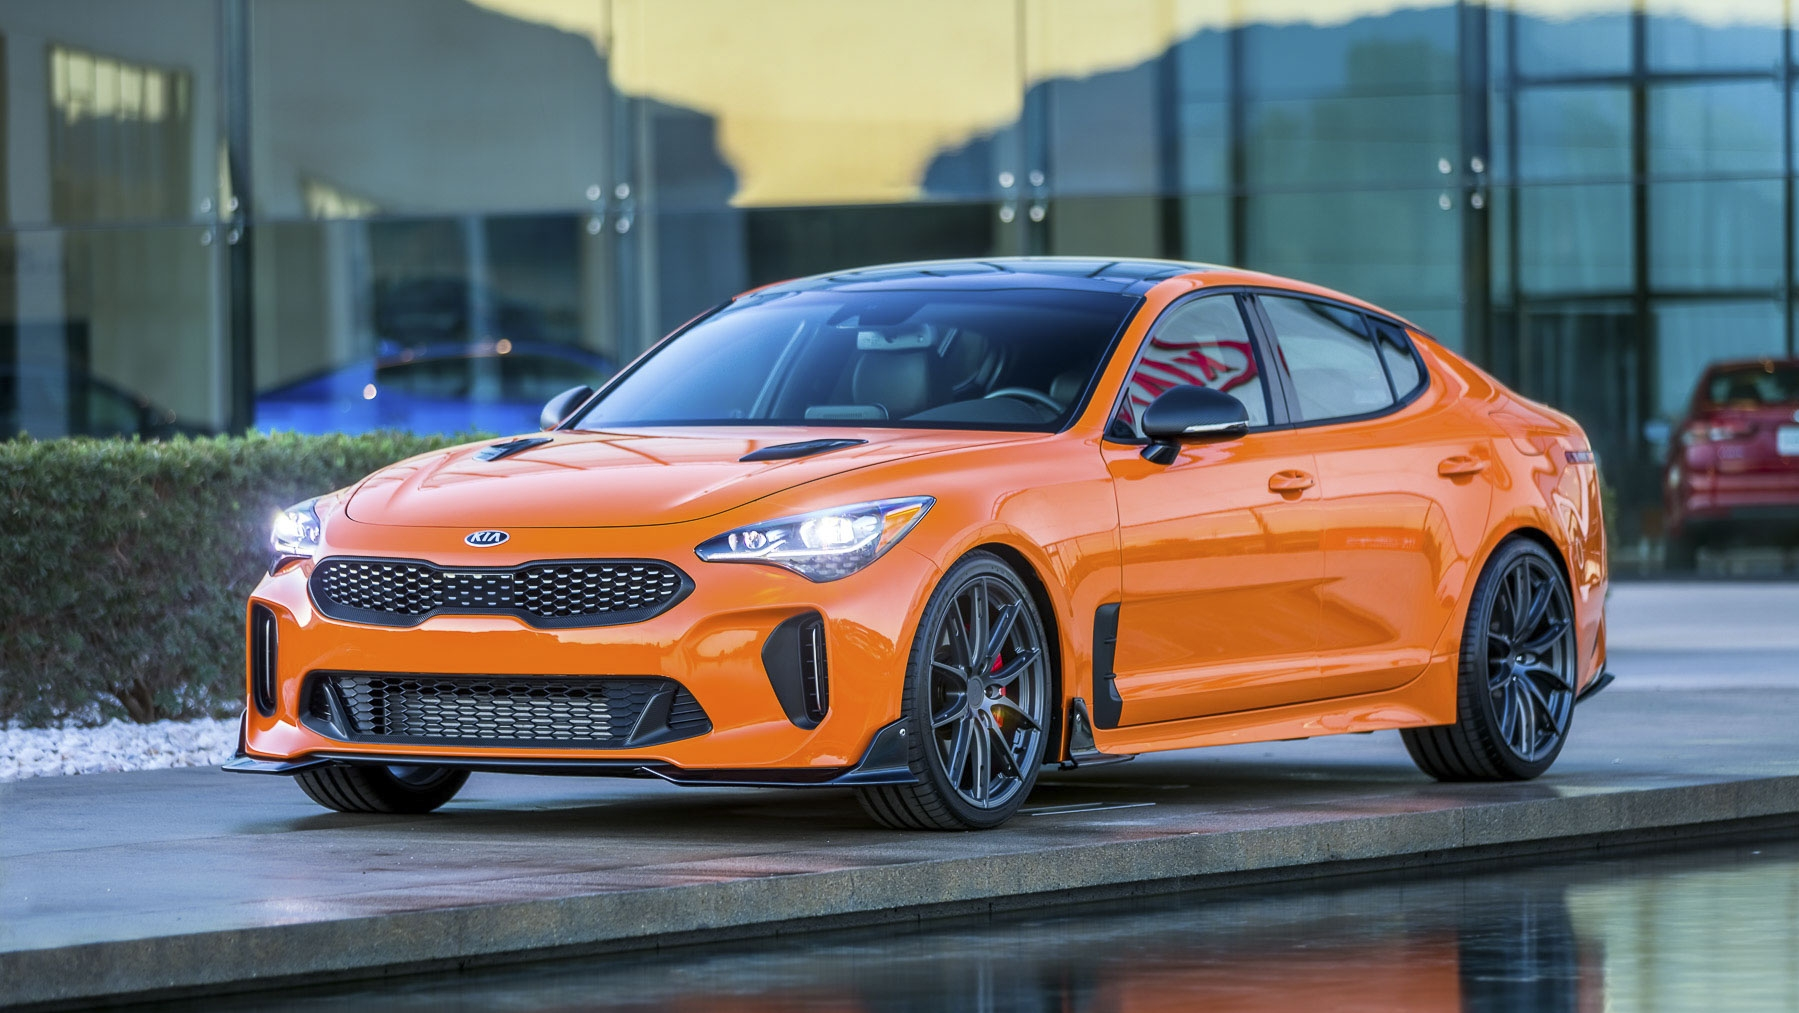 West Coast Customs Cars For Sale >> 2018 Kia Stinger GT Federation | Top Speed